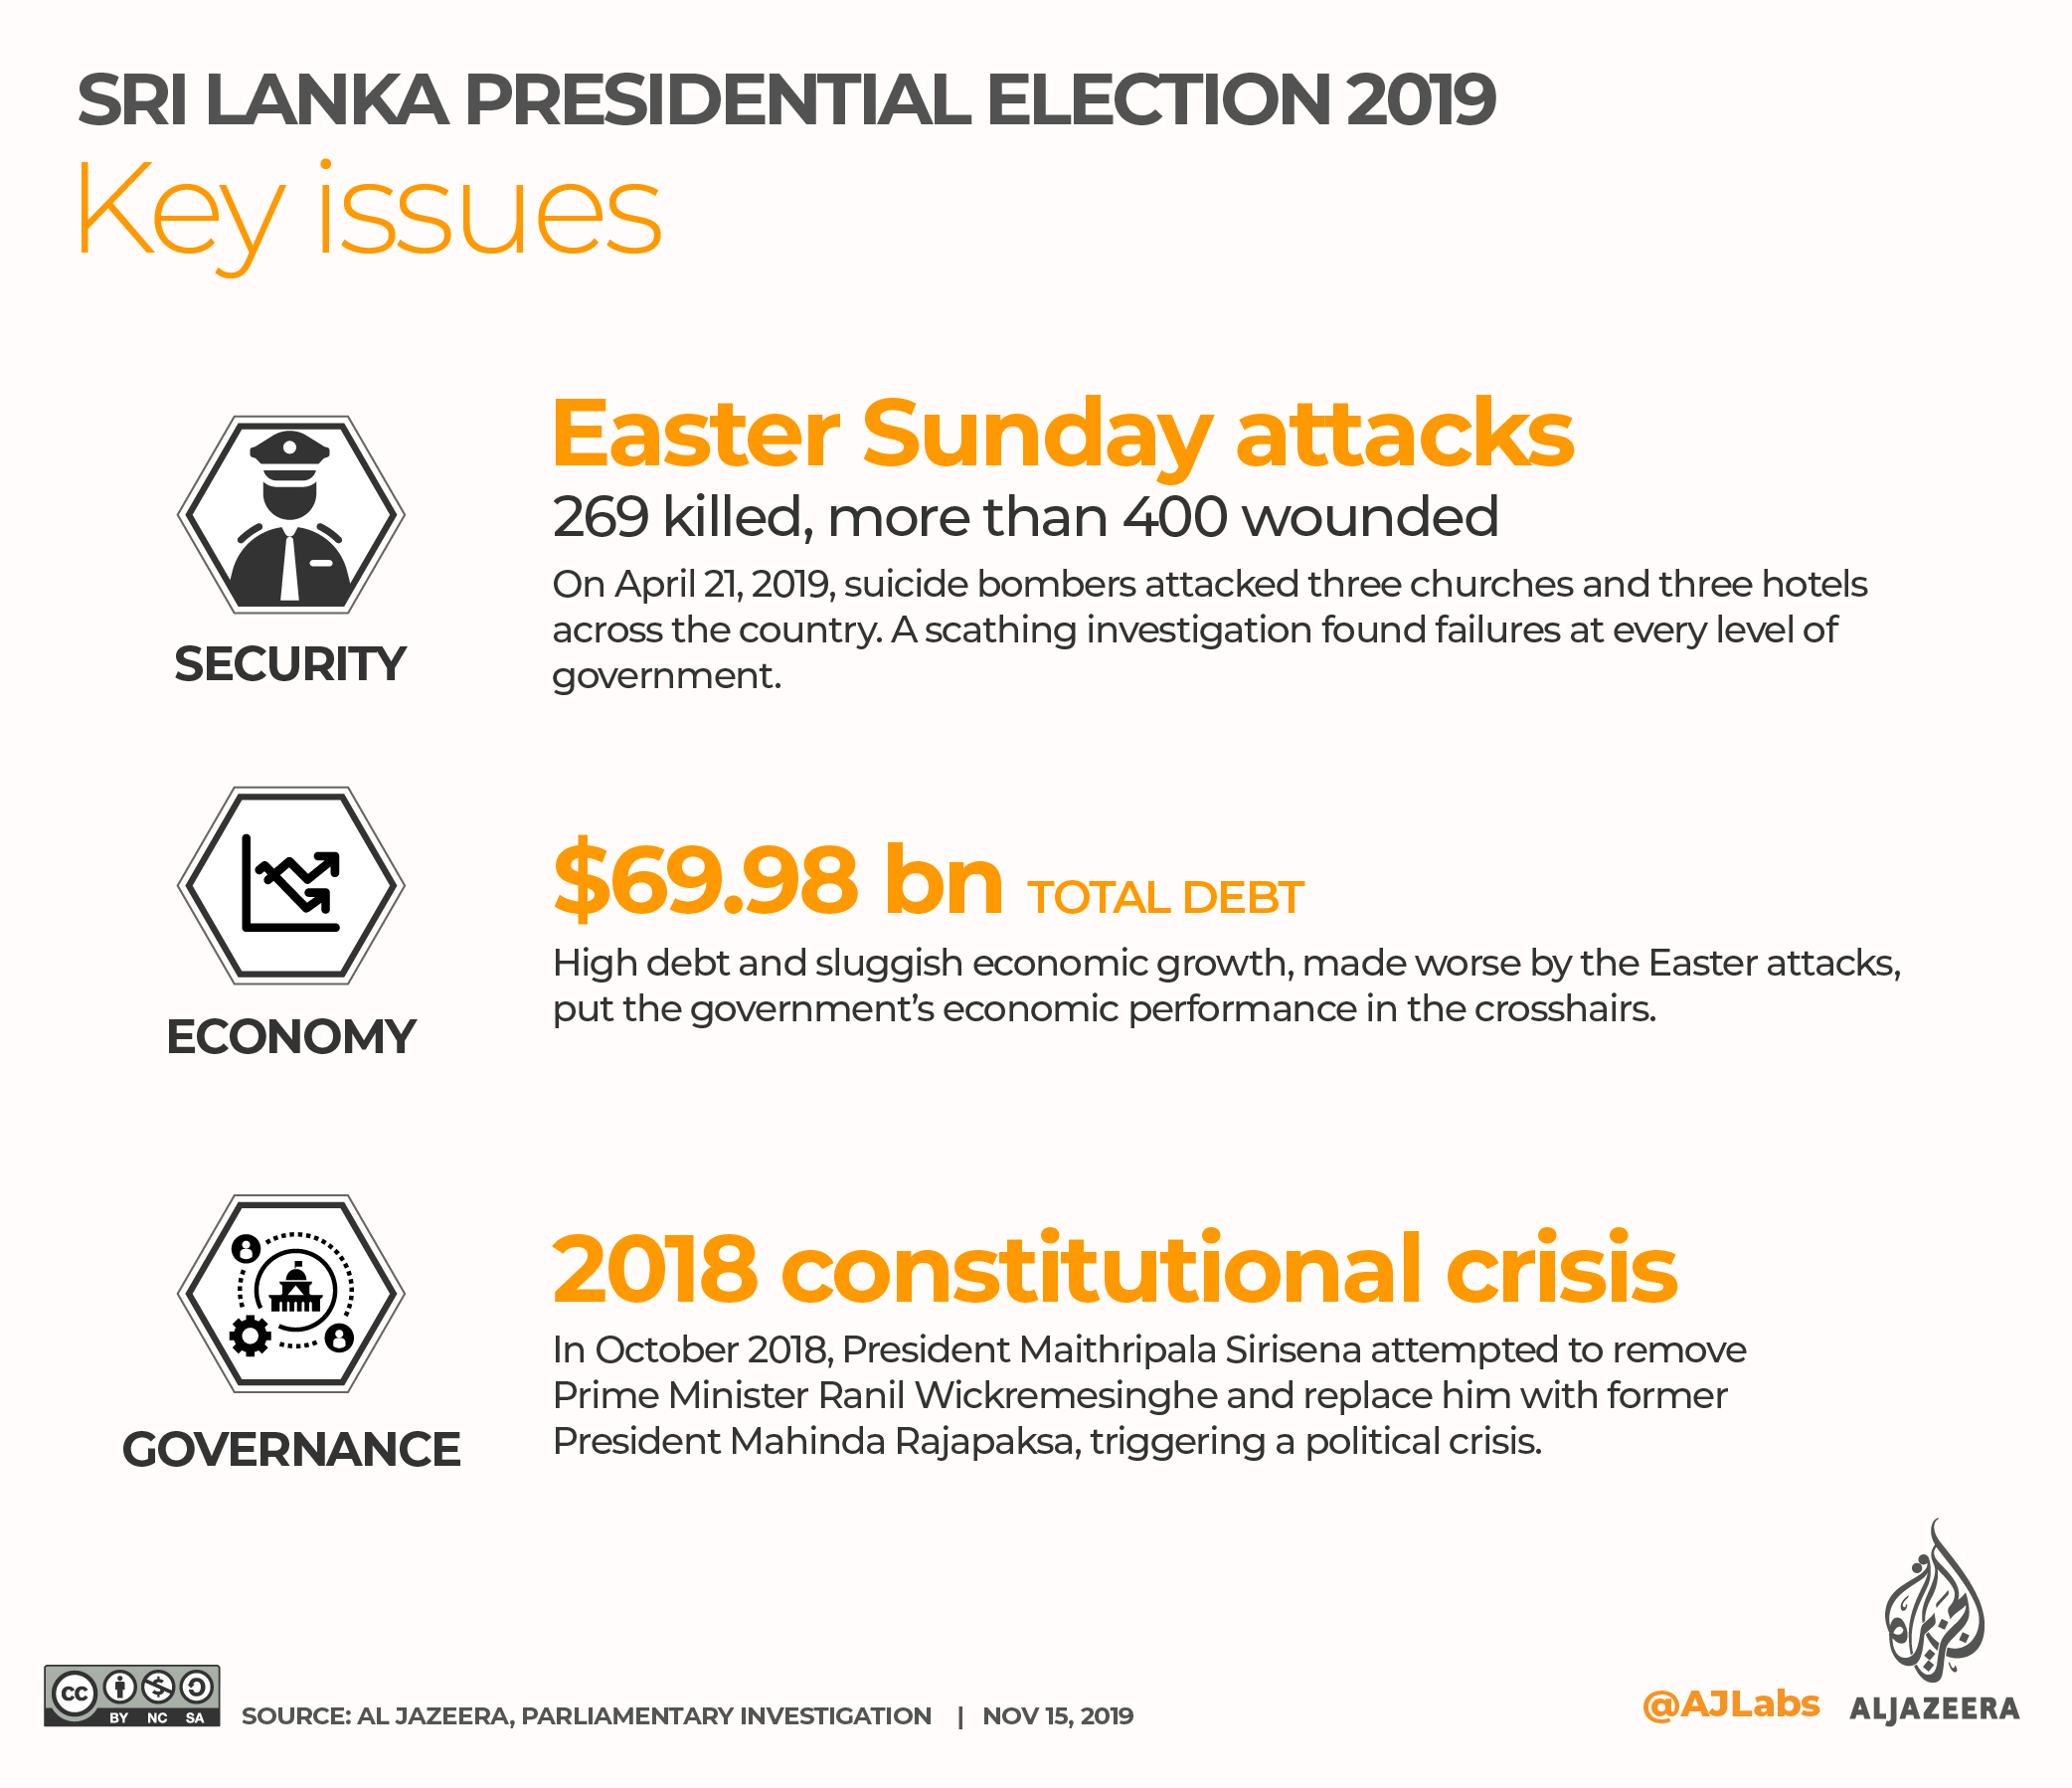 INTERACTIVE: SRI LANKA PRESIDENTIAL ELECTION 2019 - Key Issues